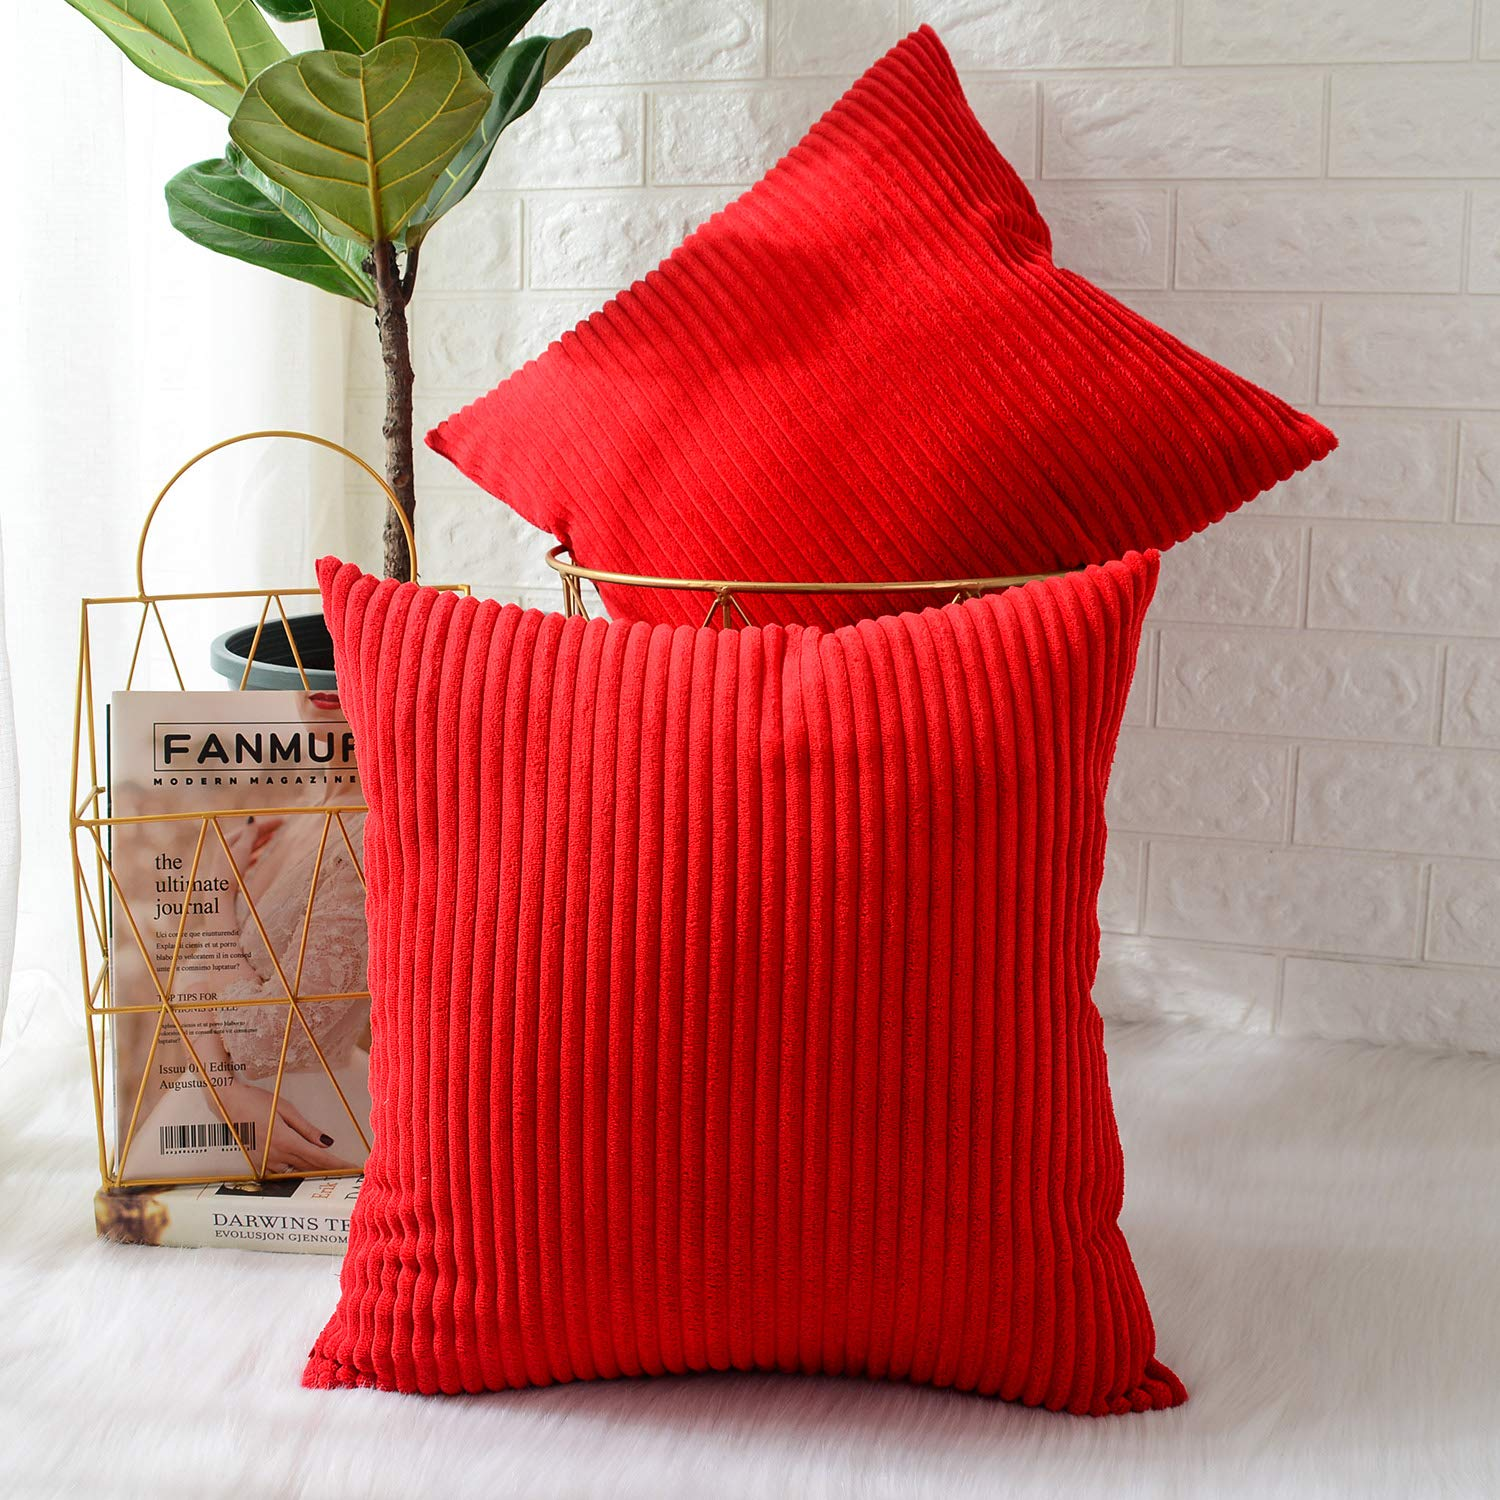 MERNETTE New Year/Christmas Decorations Corduroy Soft Decorative Square Throw Pillow Cover Cushion Covers Pillowcase, Home Decor for Party/Xmas 20x20 Inch/50x50 cm, Red, Set of 2